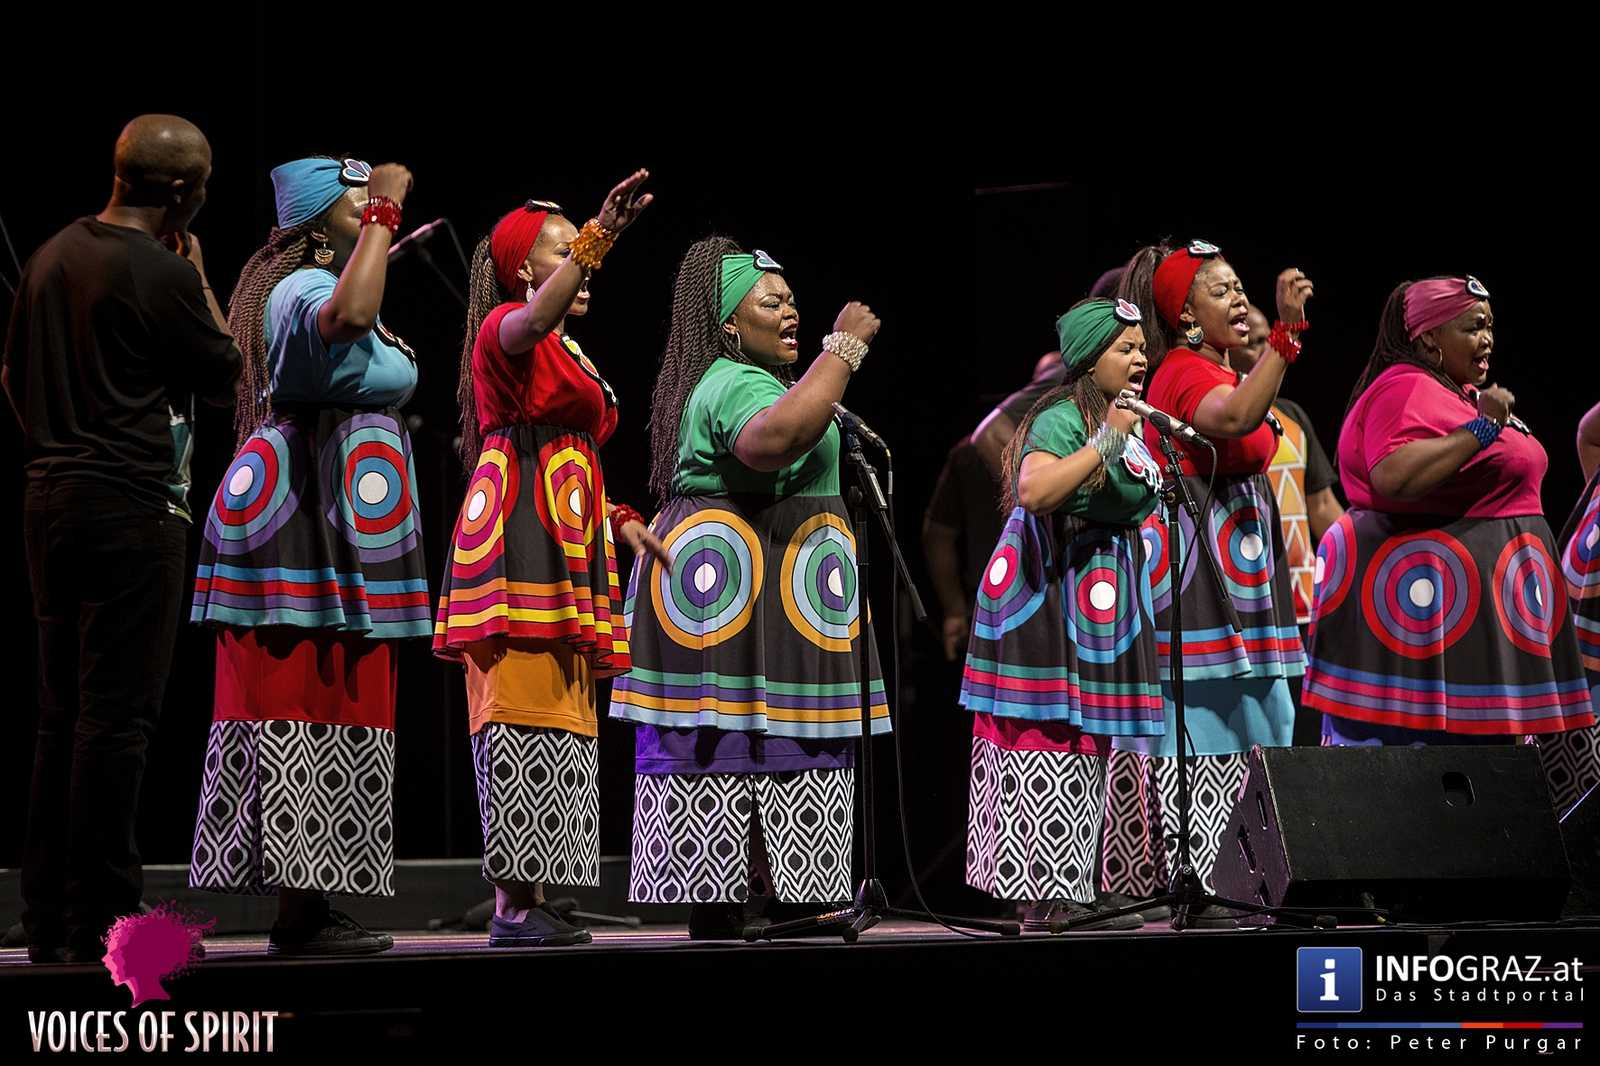 soweto gospel choir internationales chorfestival statdthalle graz voices of spirit eroeffnung festivals 2016 041